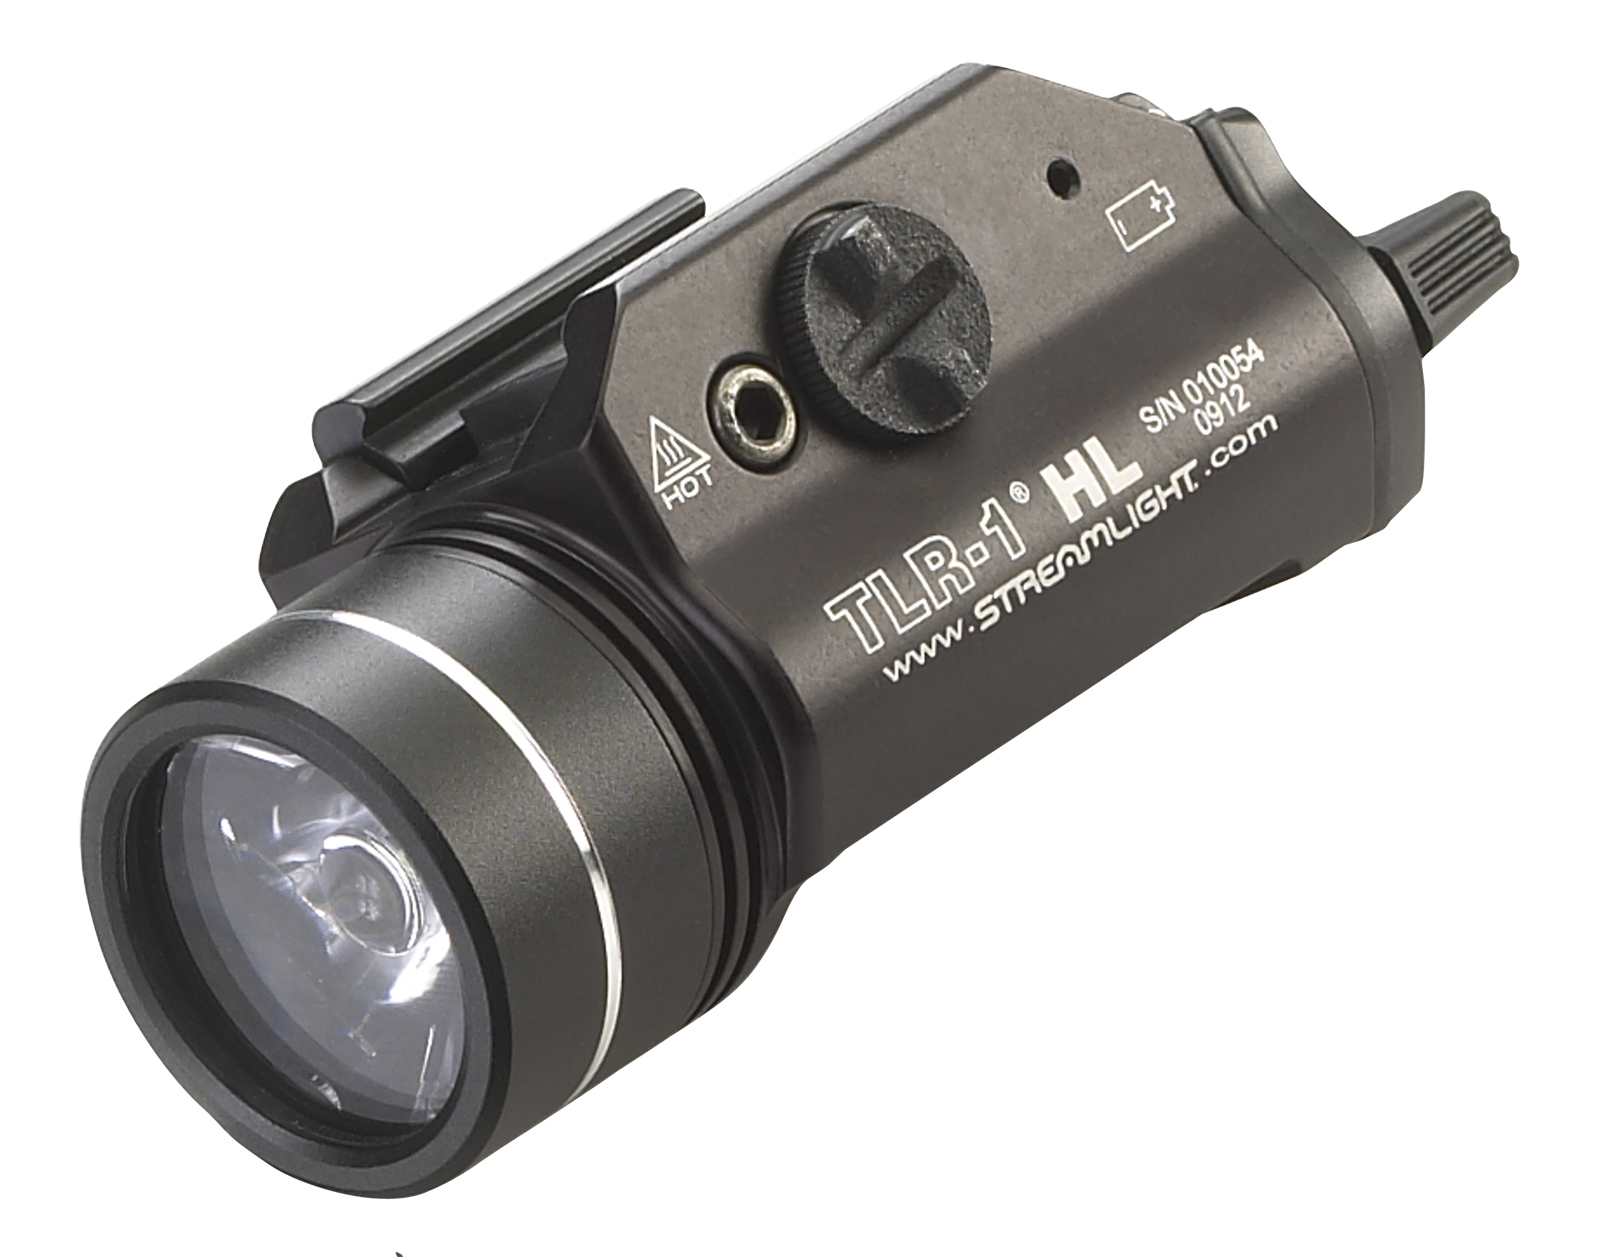 Official Pics and Specs for the Streamlight TLR-1 HL and TLR-2 HL from the 2013 SHOT Show